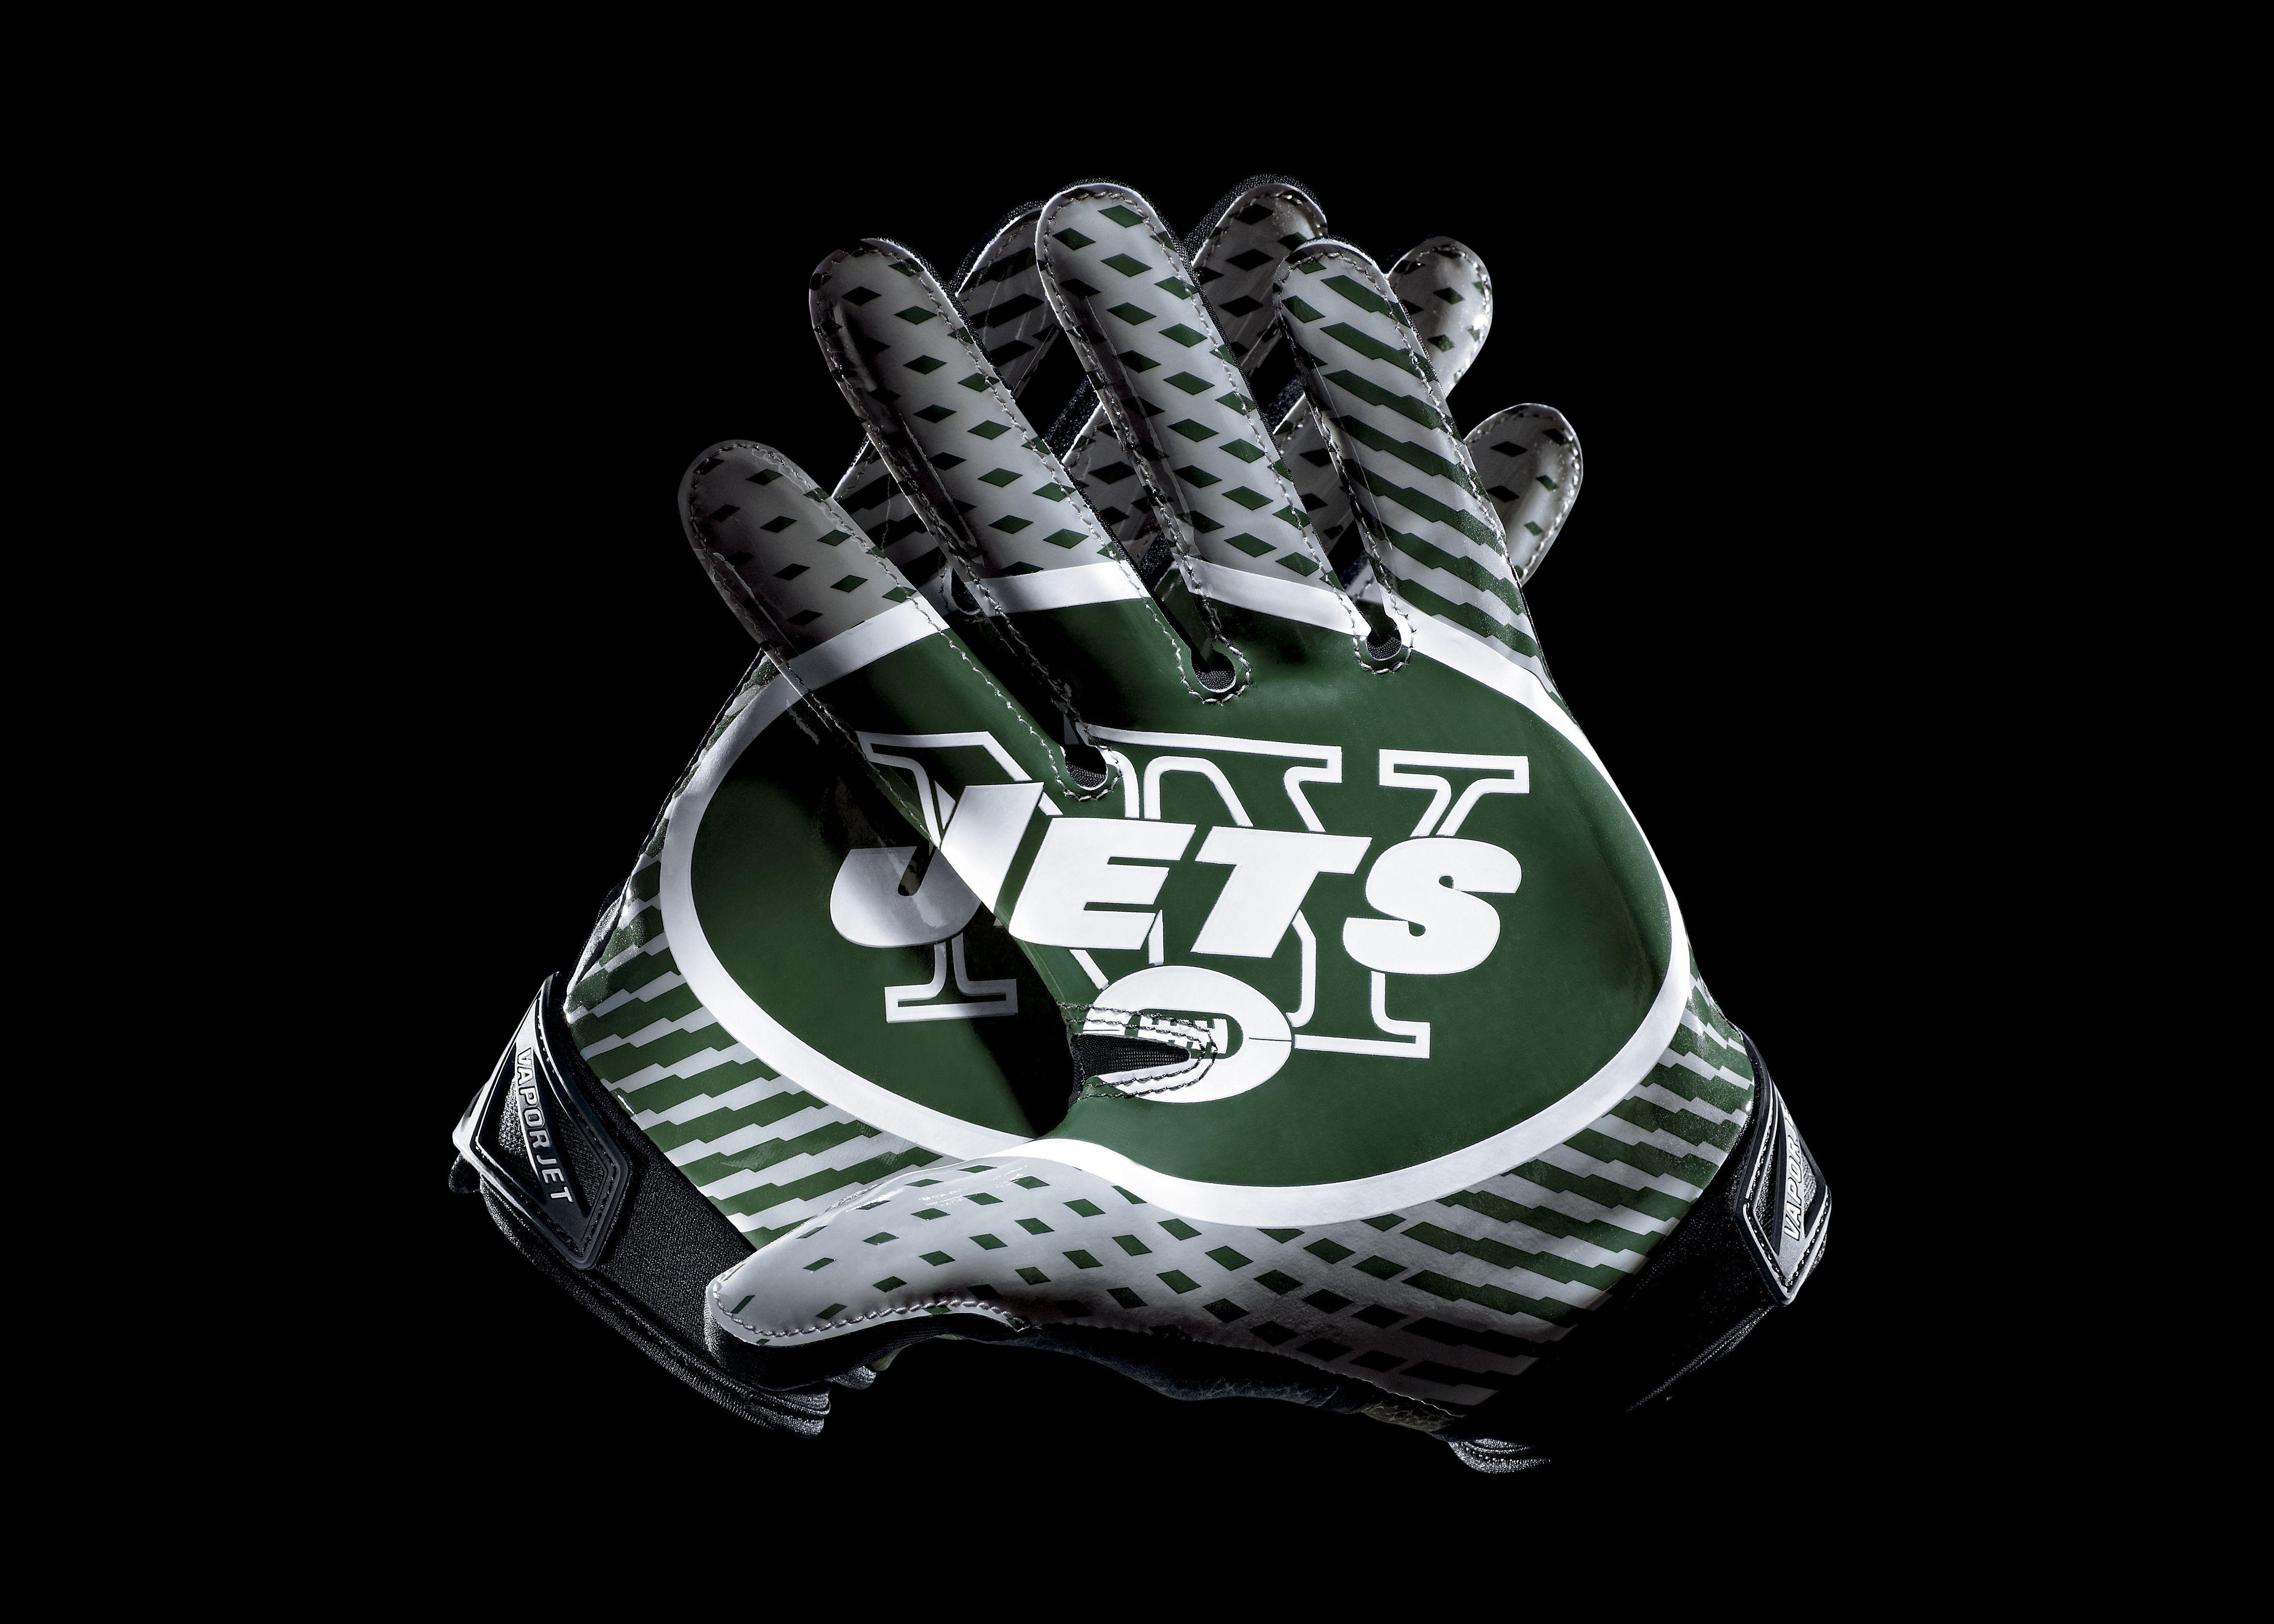 New York Jets NFL Wallpapers for Android Free Download